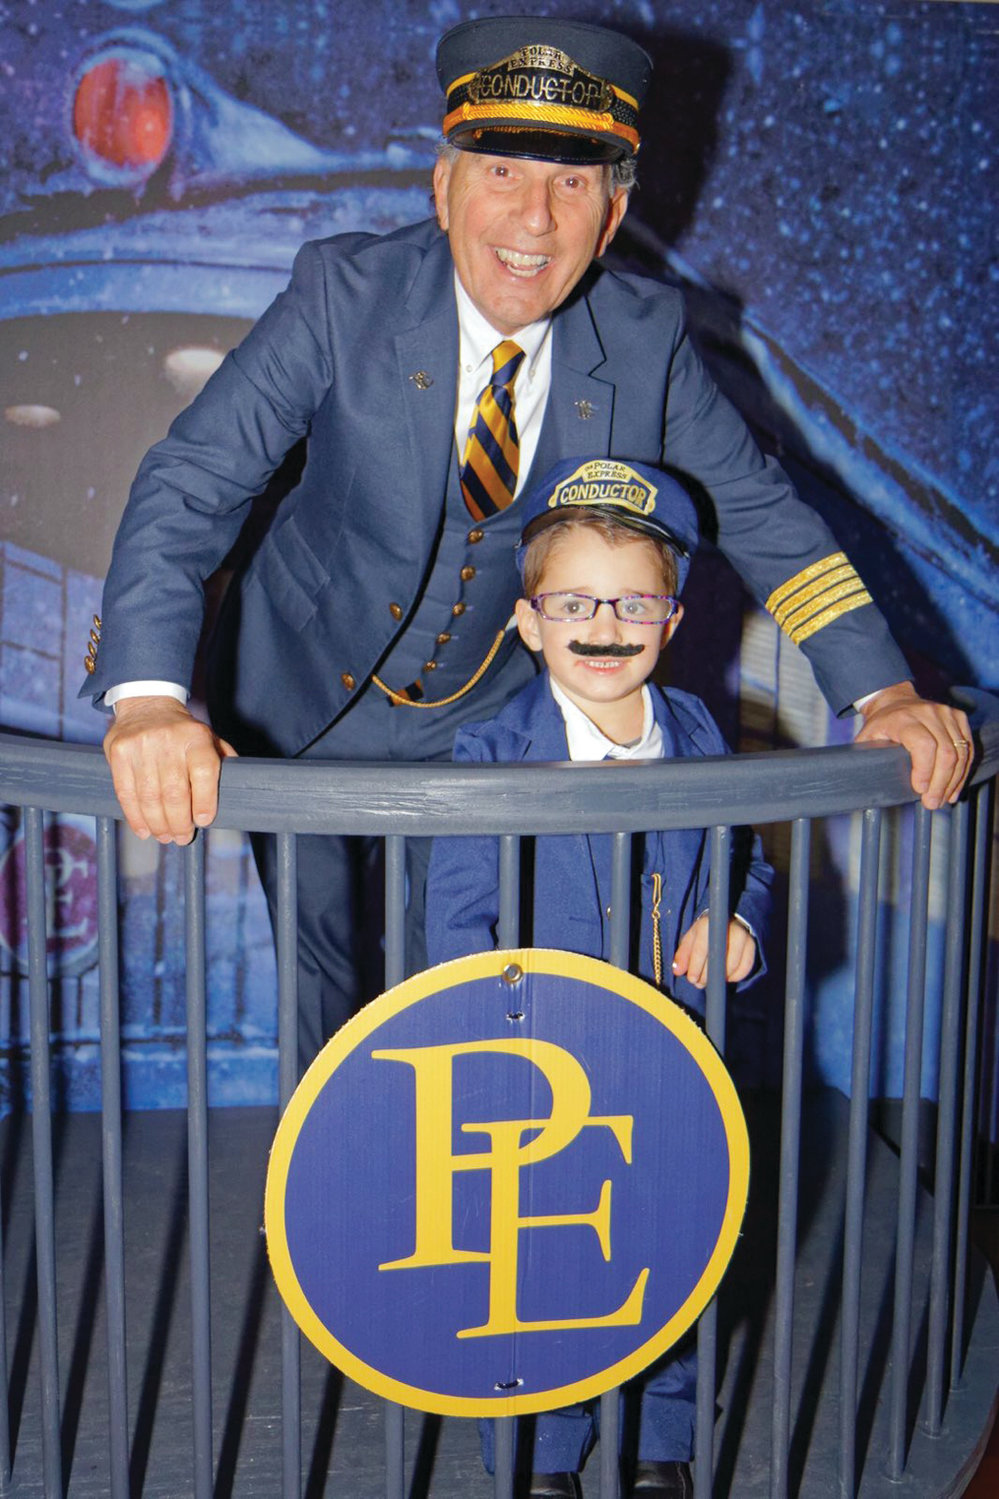 Conductor Robert Billington with a young traveler ready to experience the Polar Express.